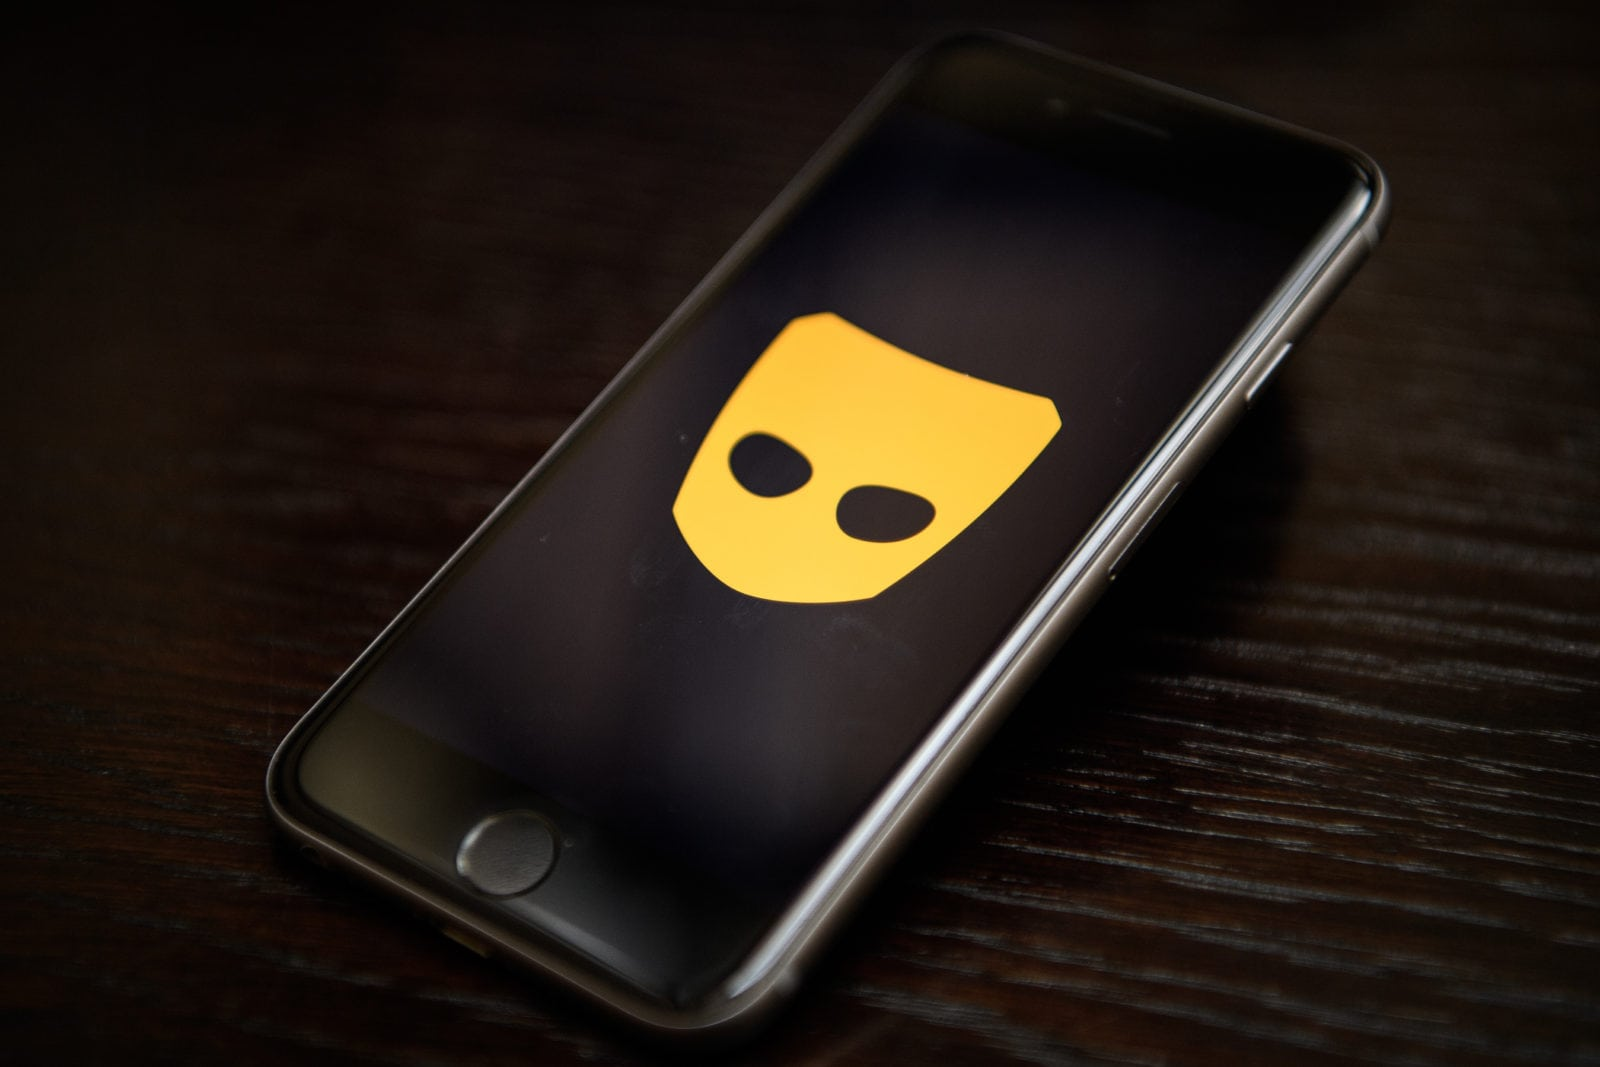 Lebanon Grindr ban: A phone on a table with the Grindr app switched on